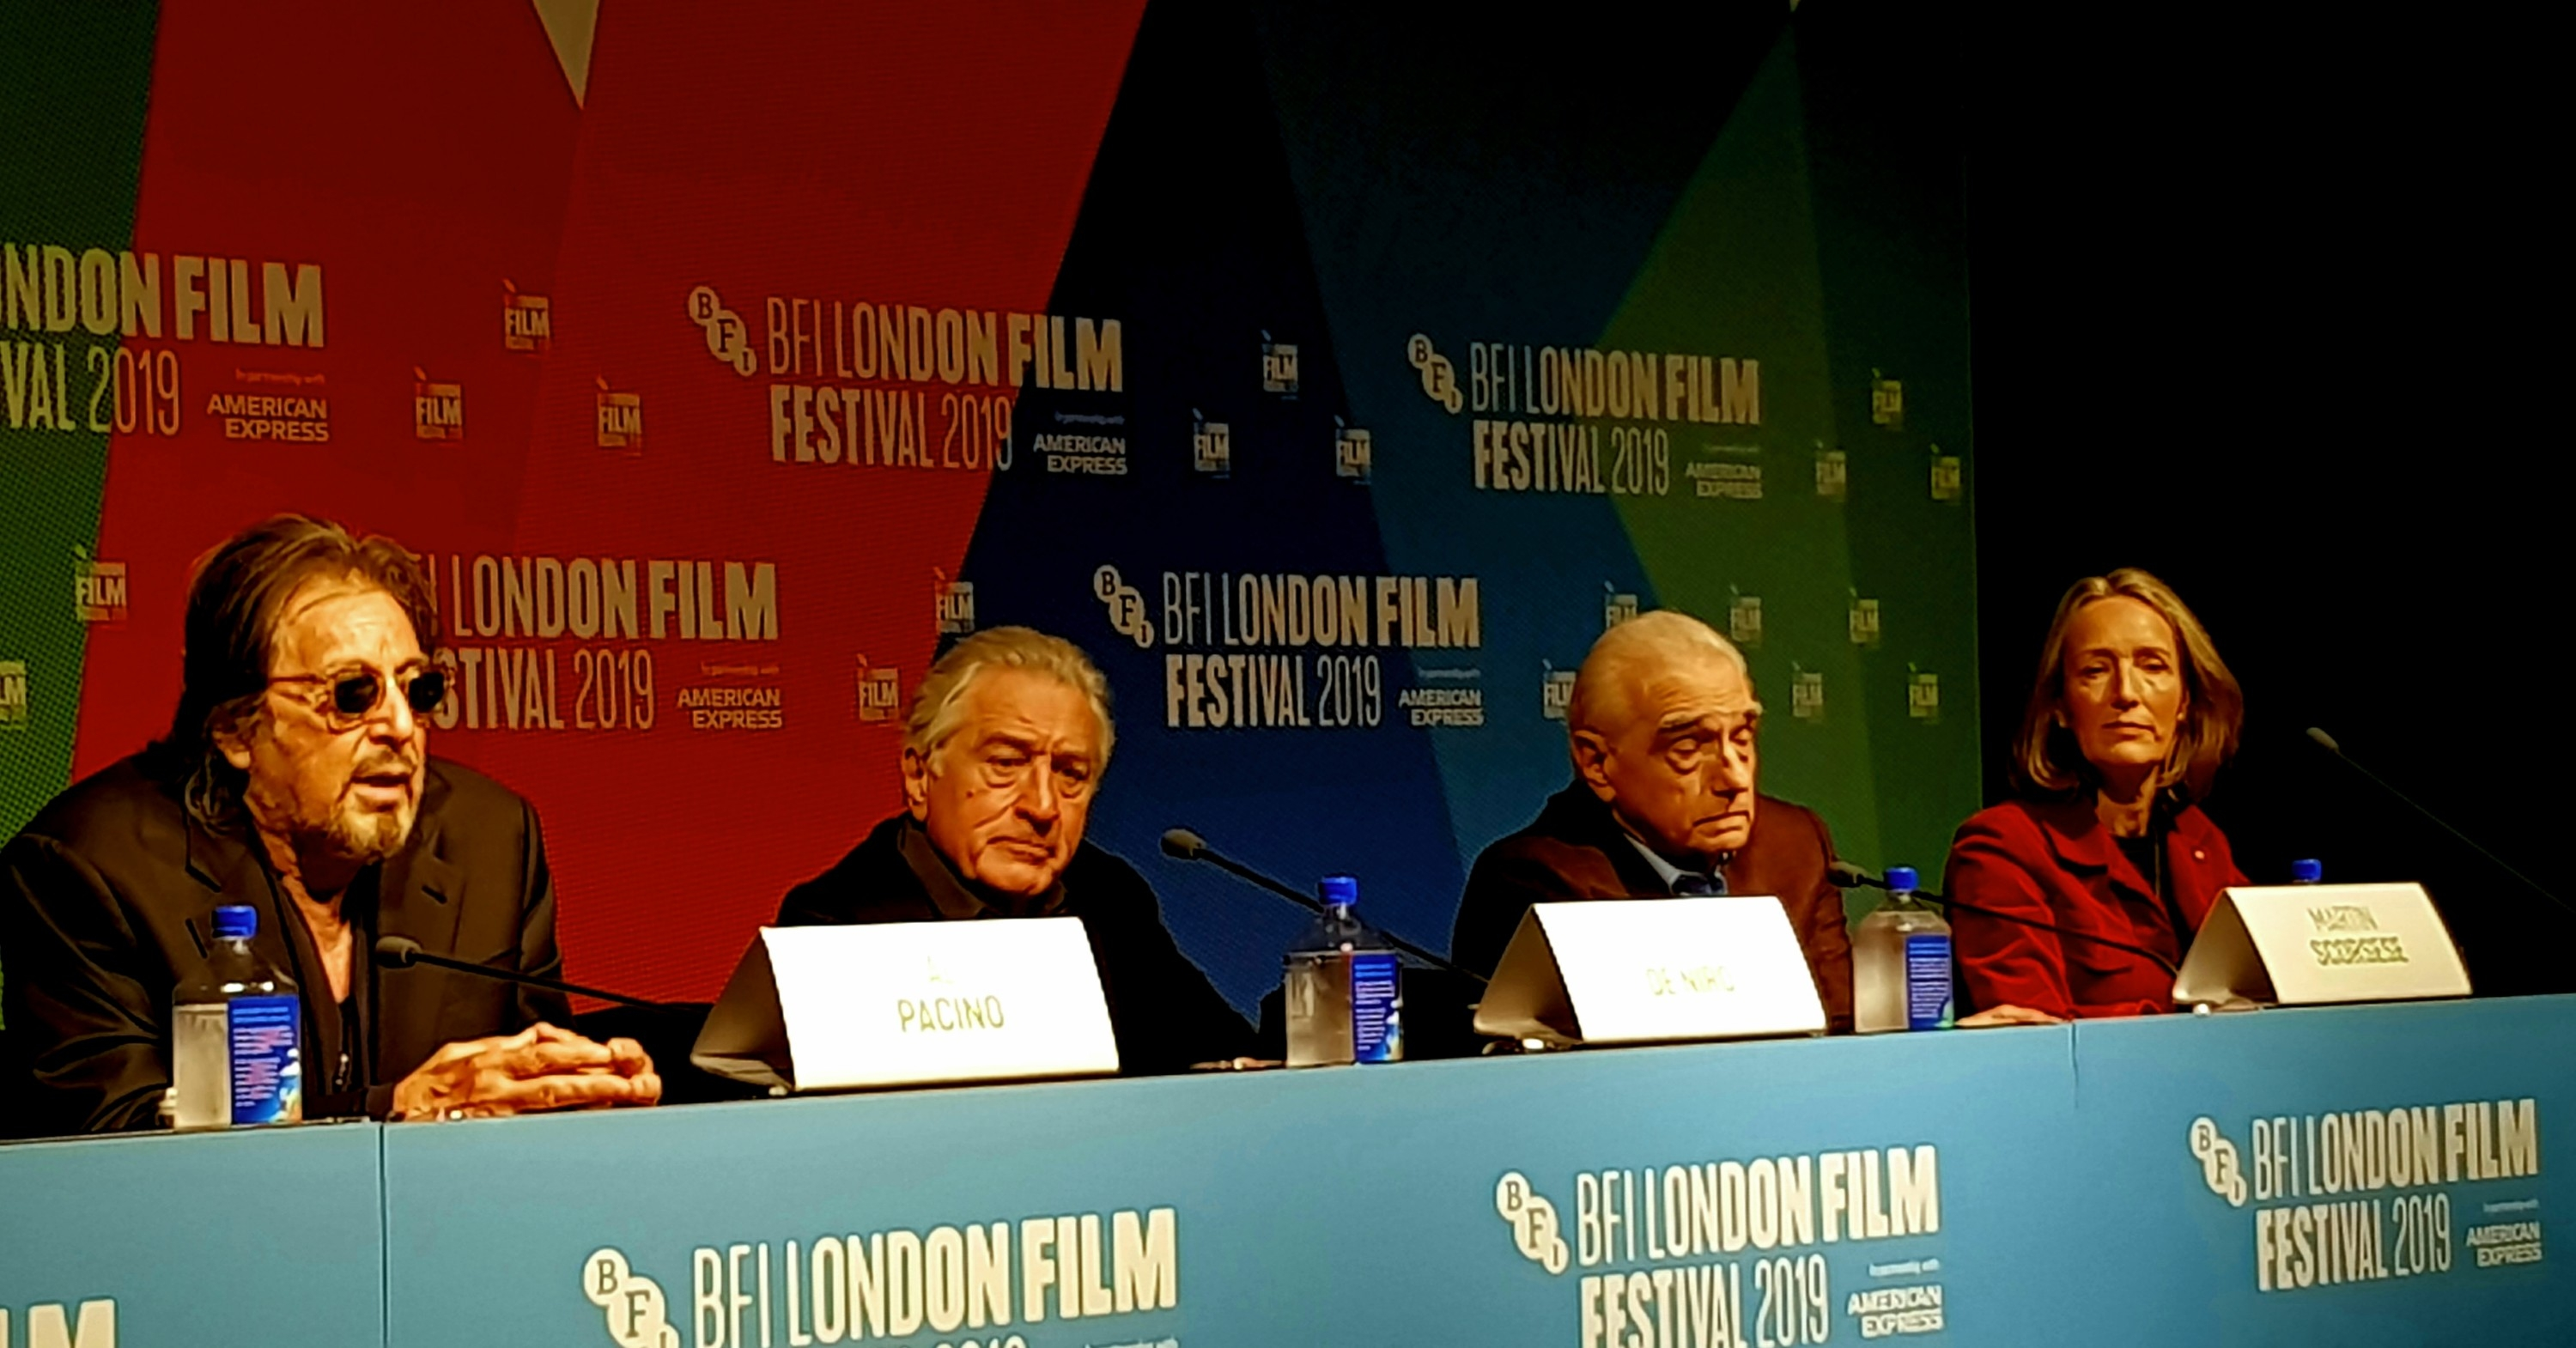 Pacino, De Niro and Scorsese at the The Irishman Press conference for LFF